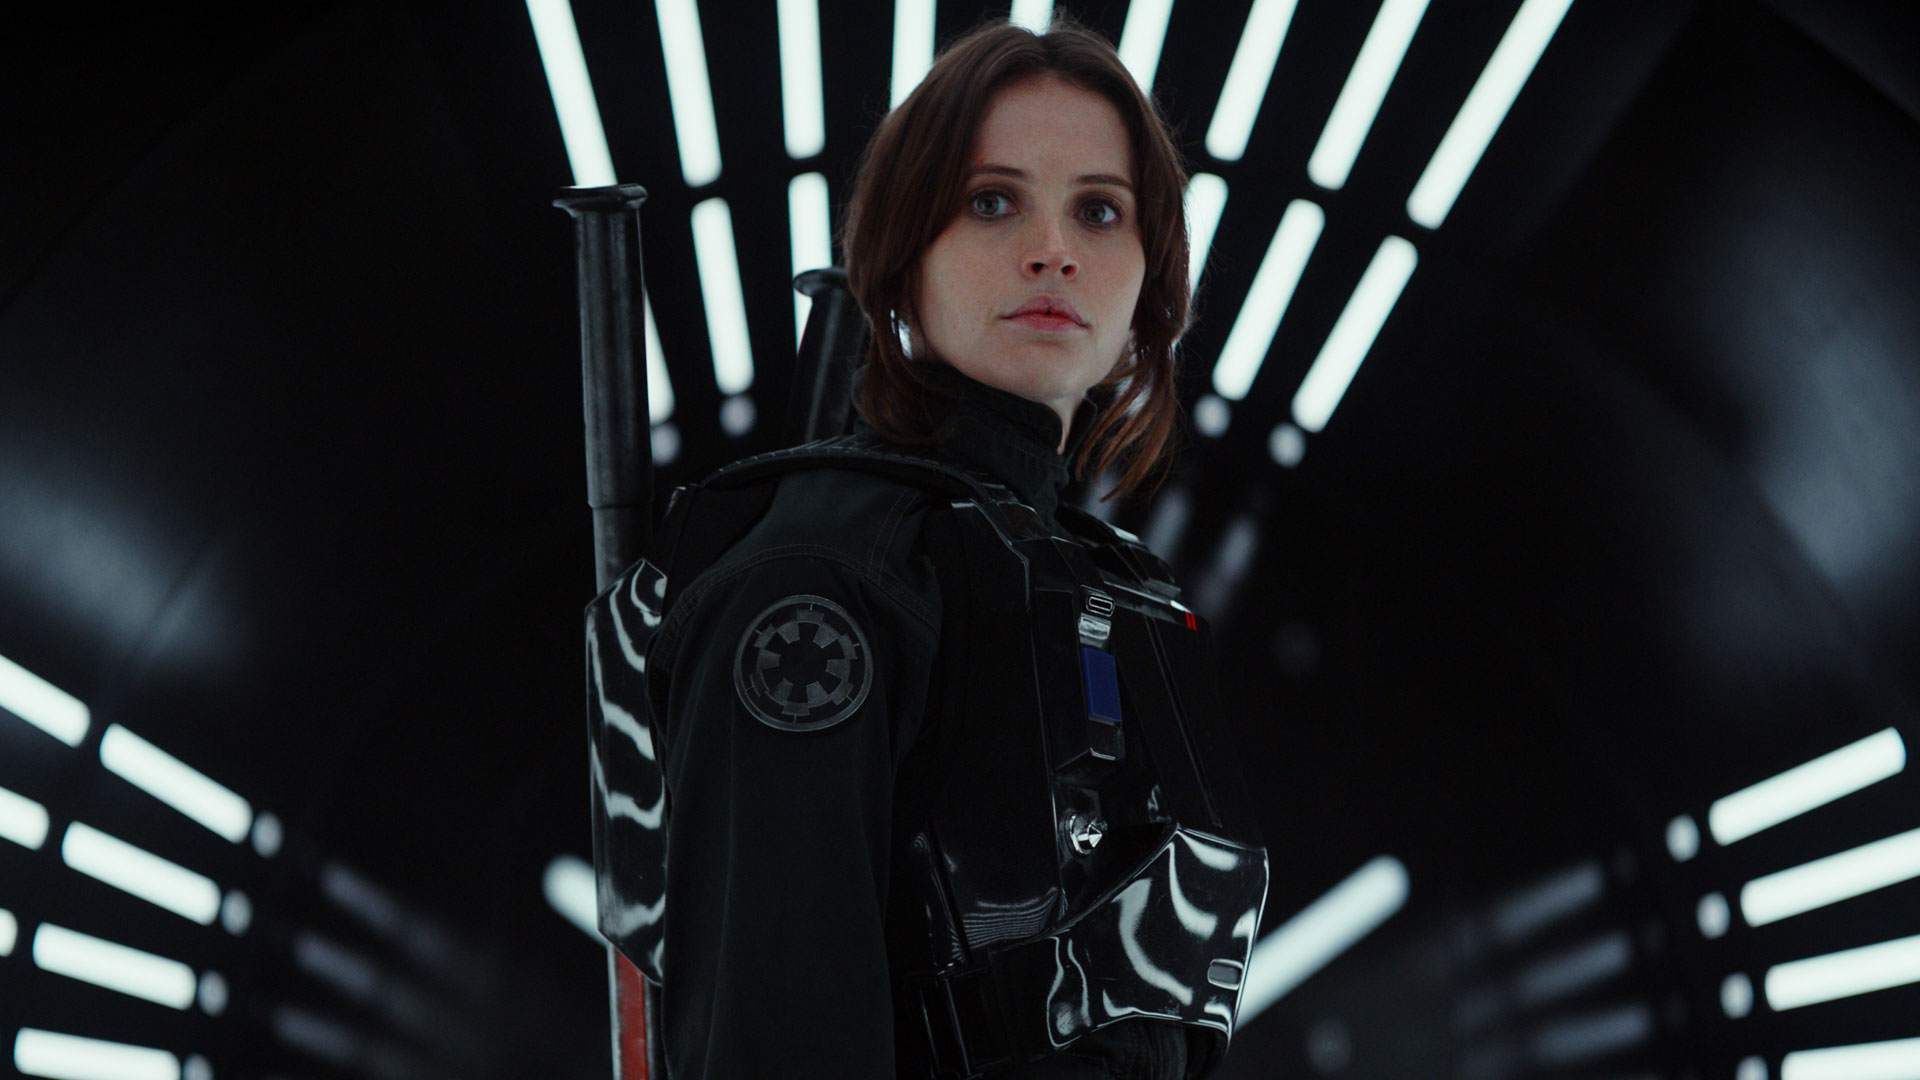 rogue-one-3_1460040193337_1454842_ver1.0